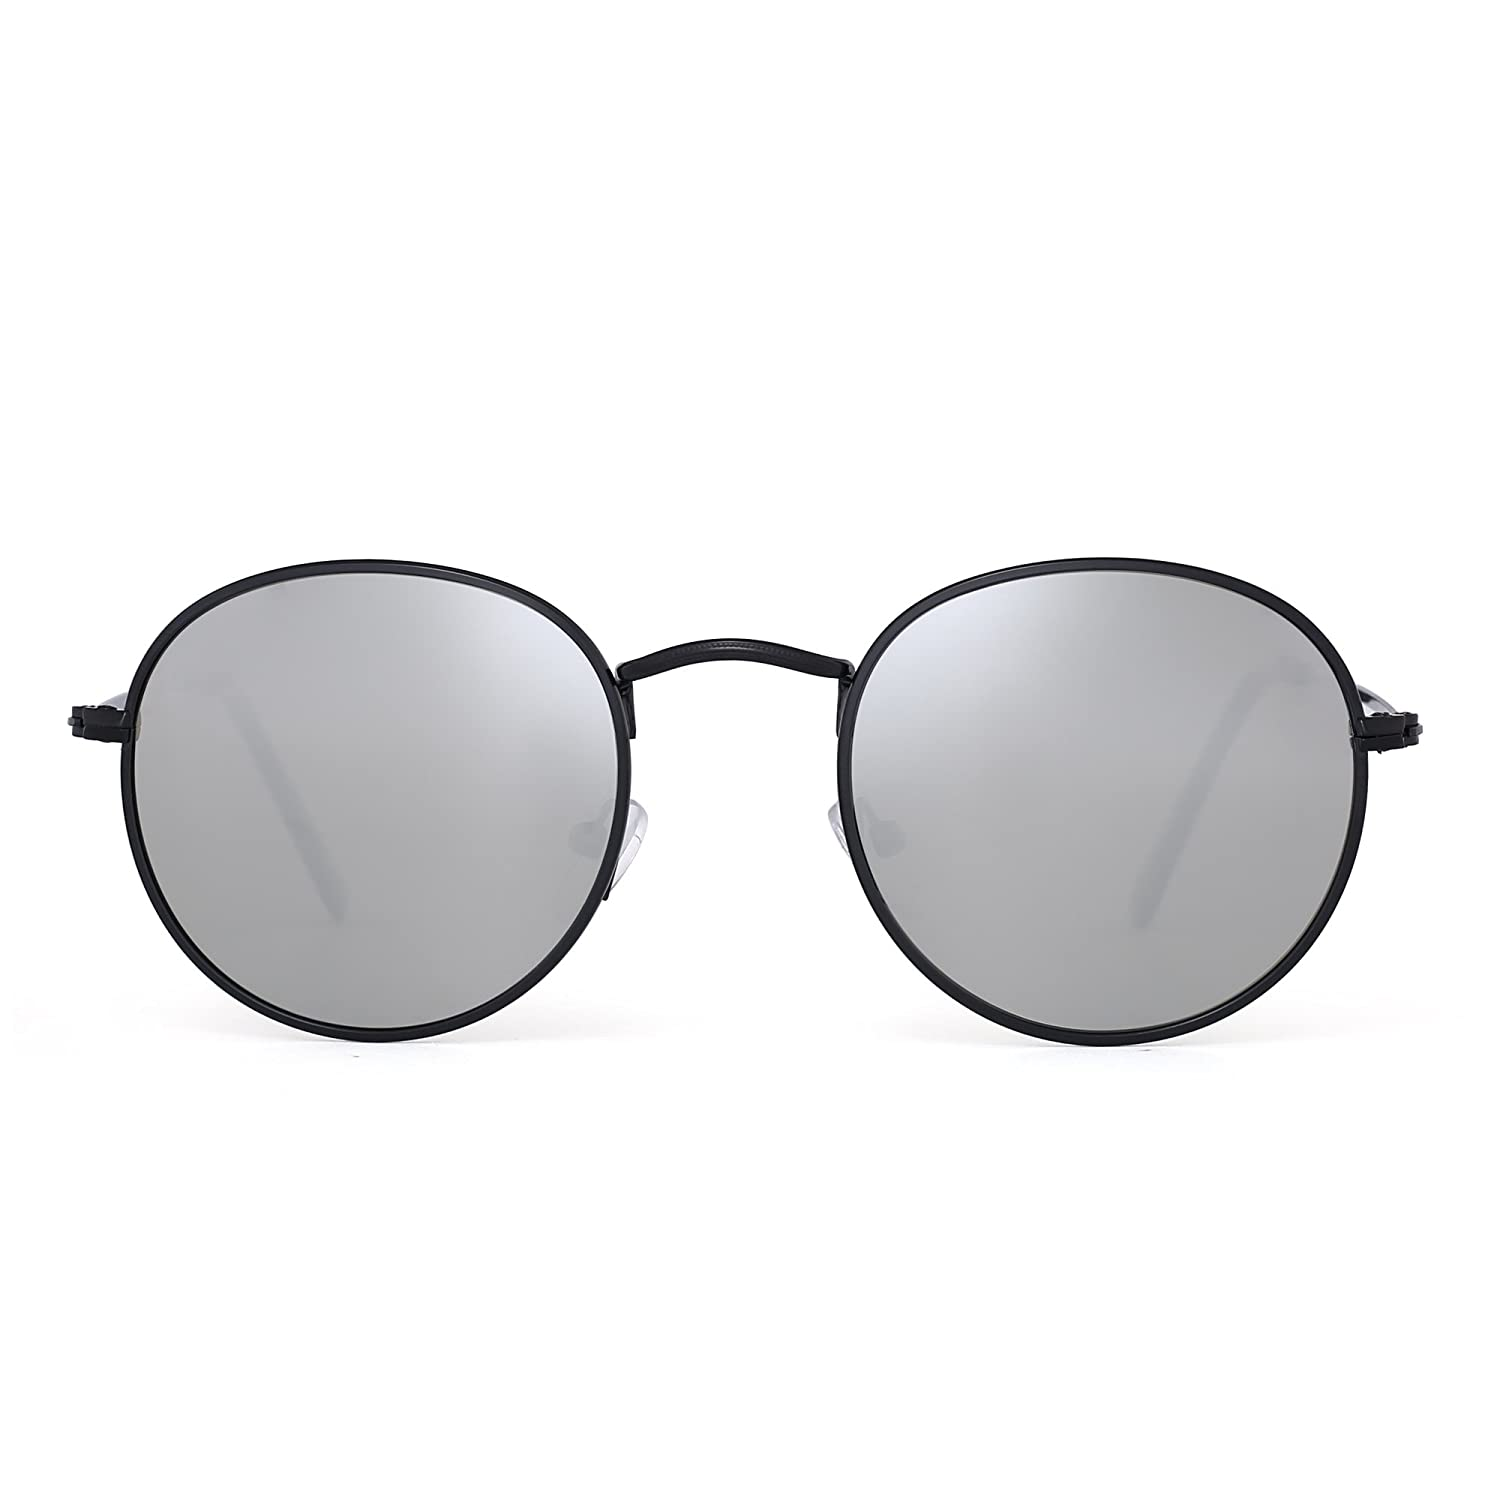 Polarized Small Round Sunglasses Retro Mirror Circle Lens Metal Frame Men Women ZT3590 C3